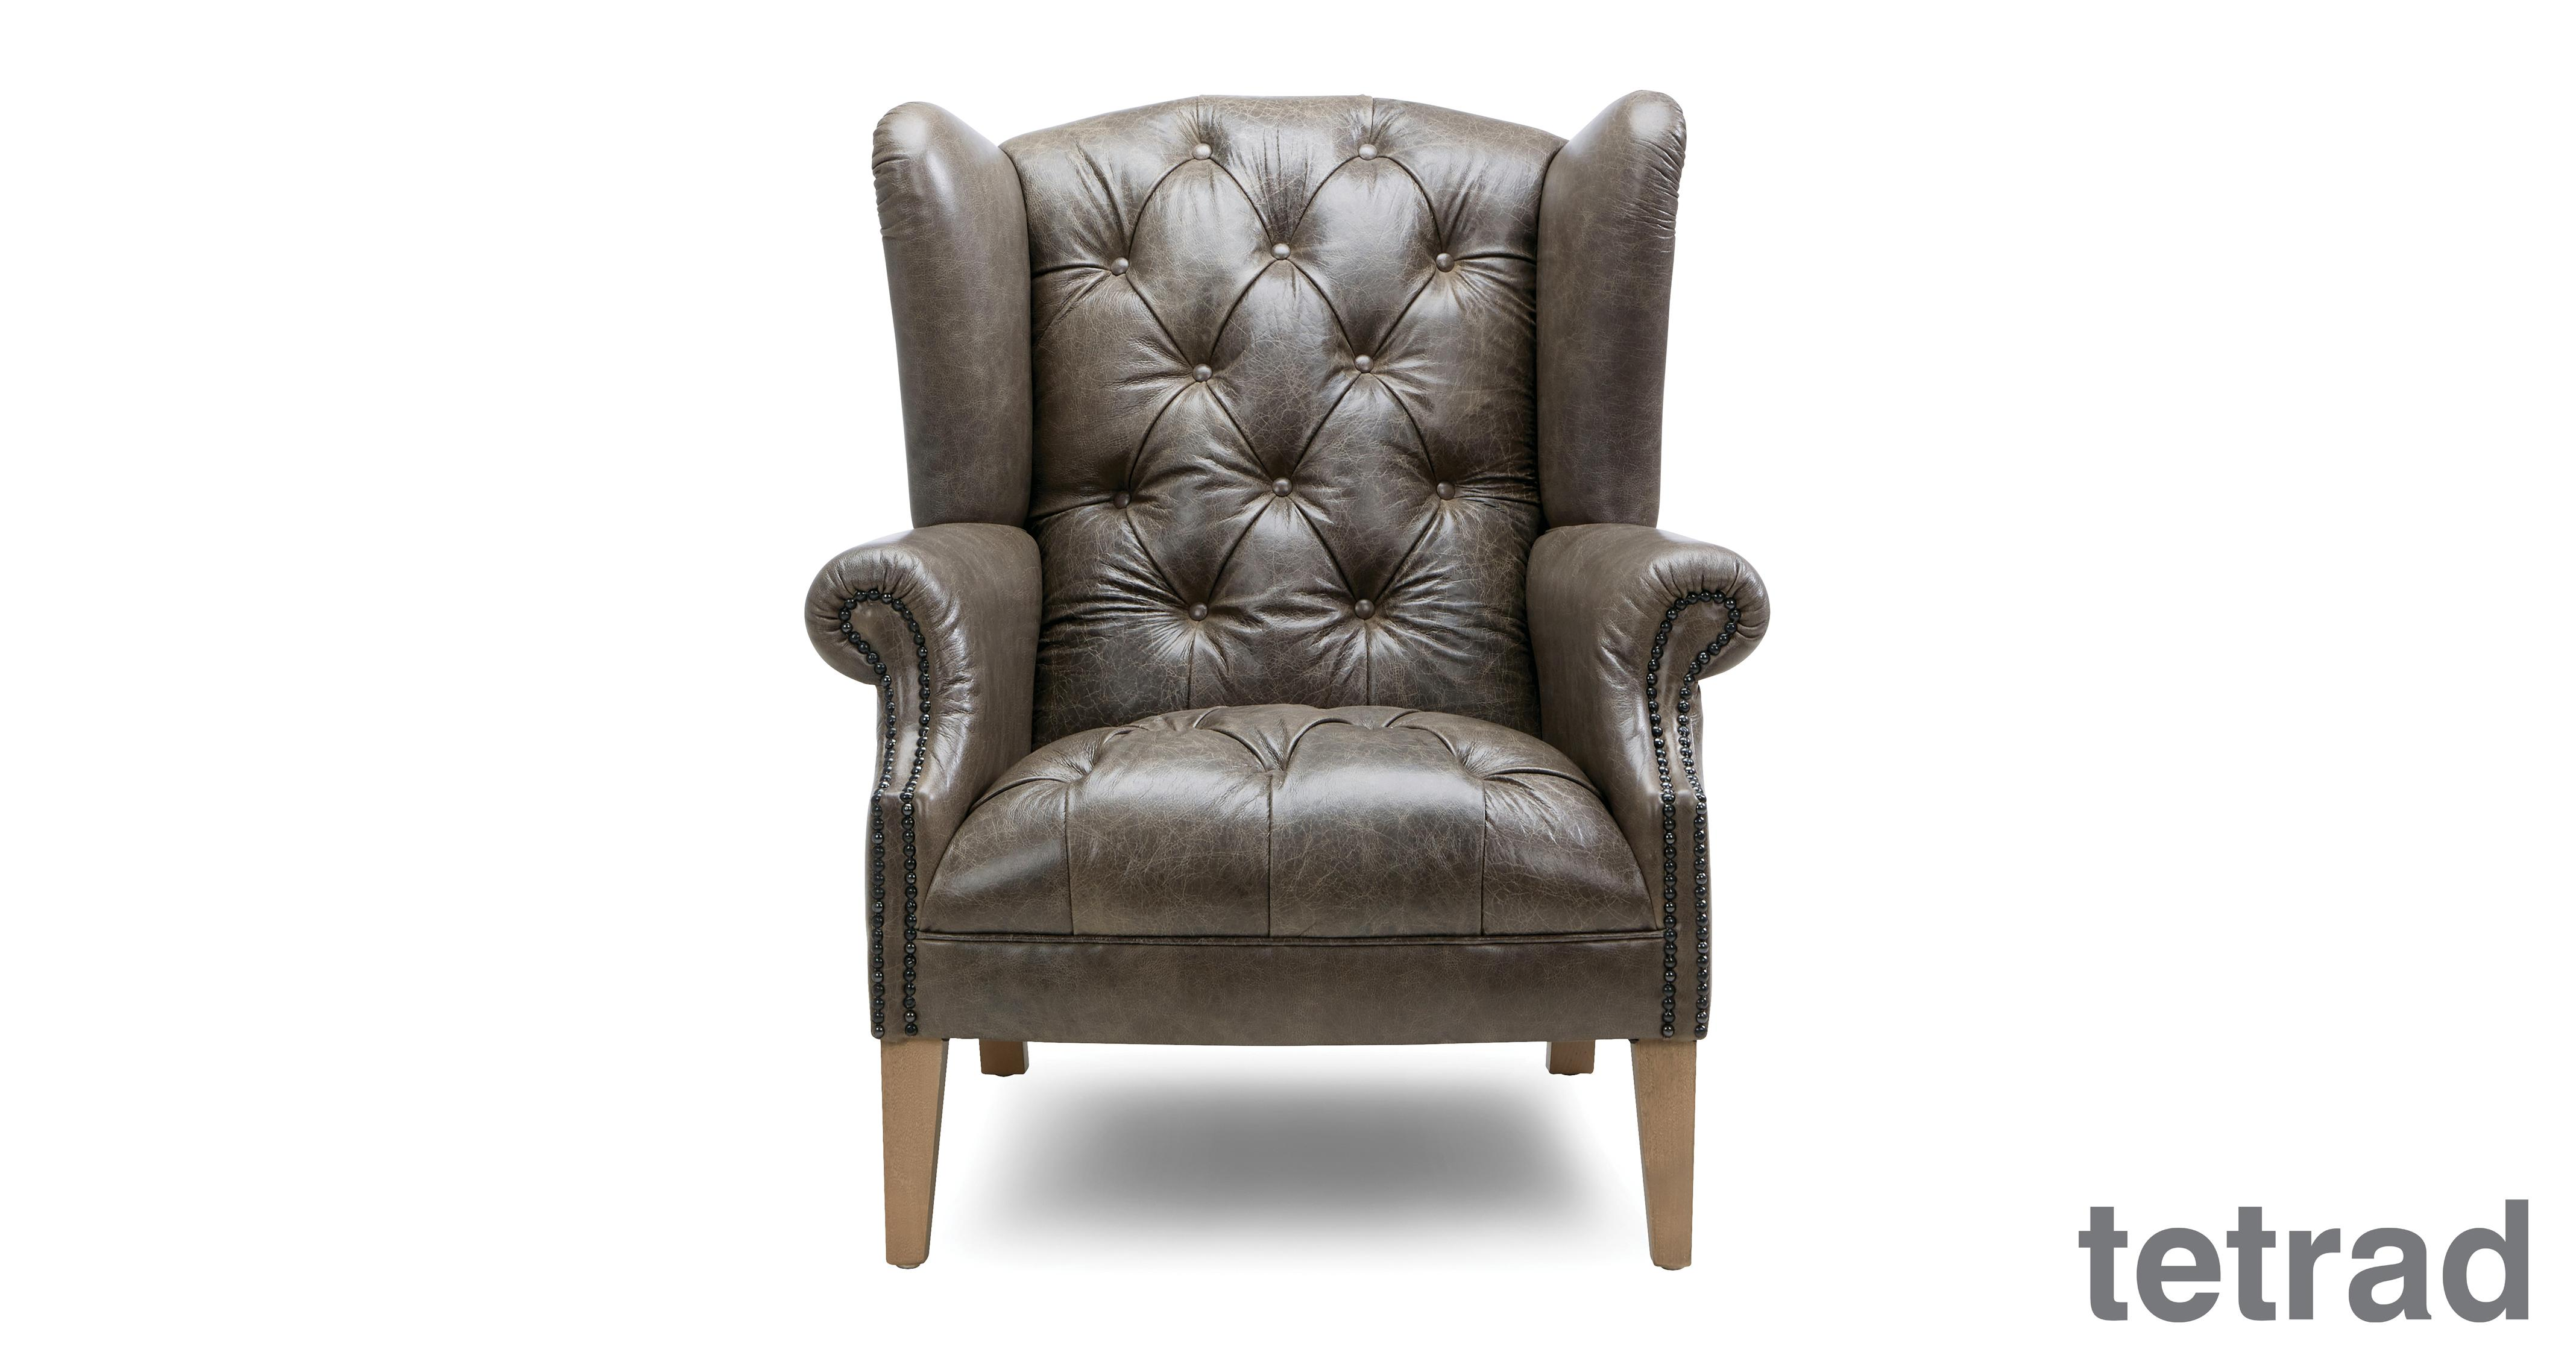 About The Palace Leather Wing Chair